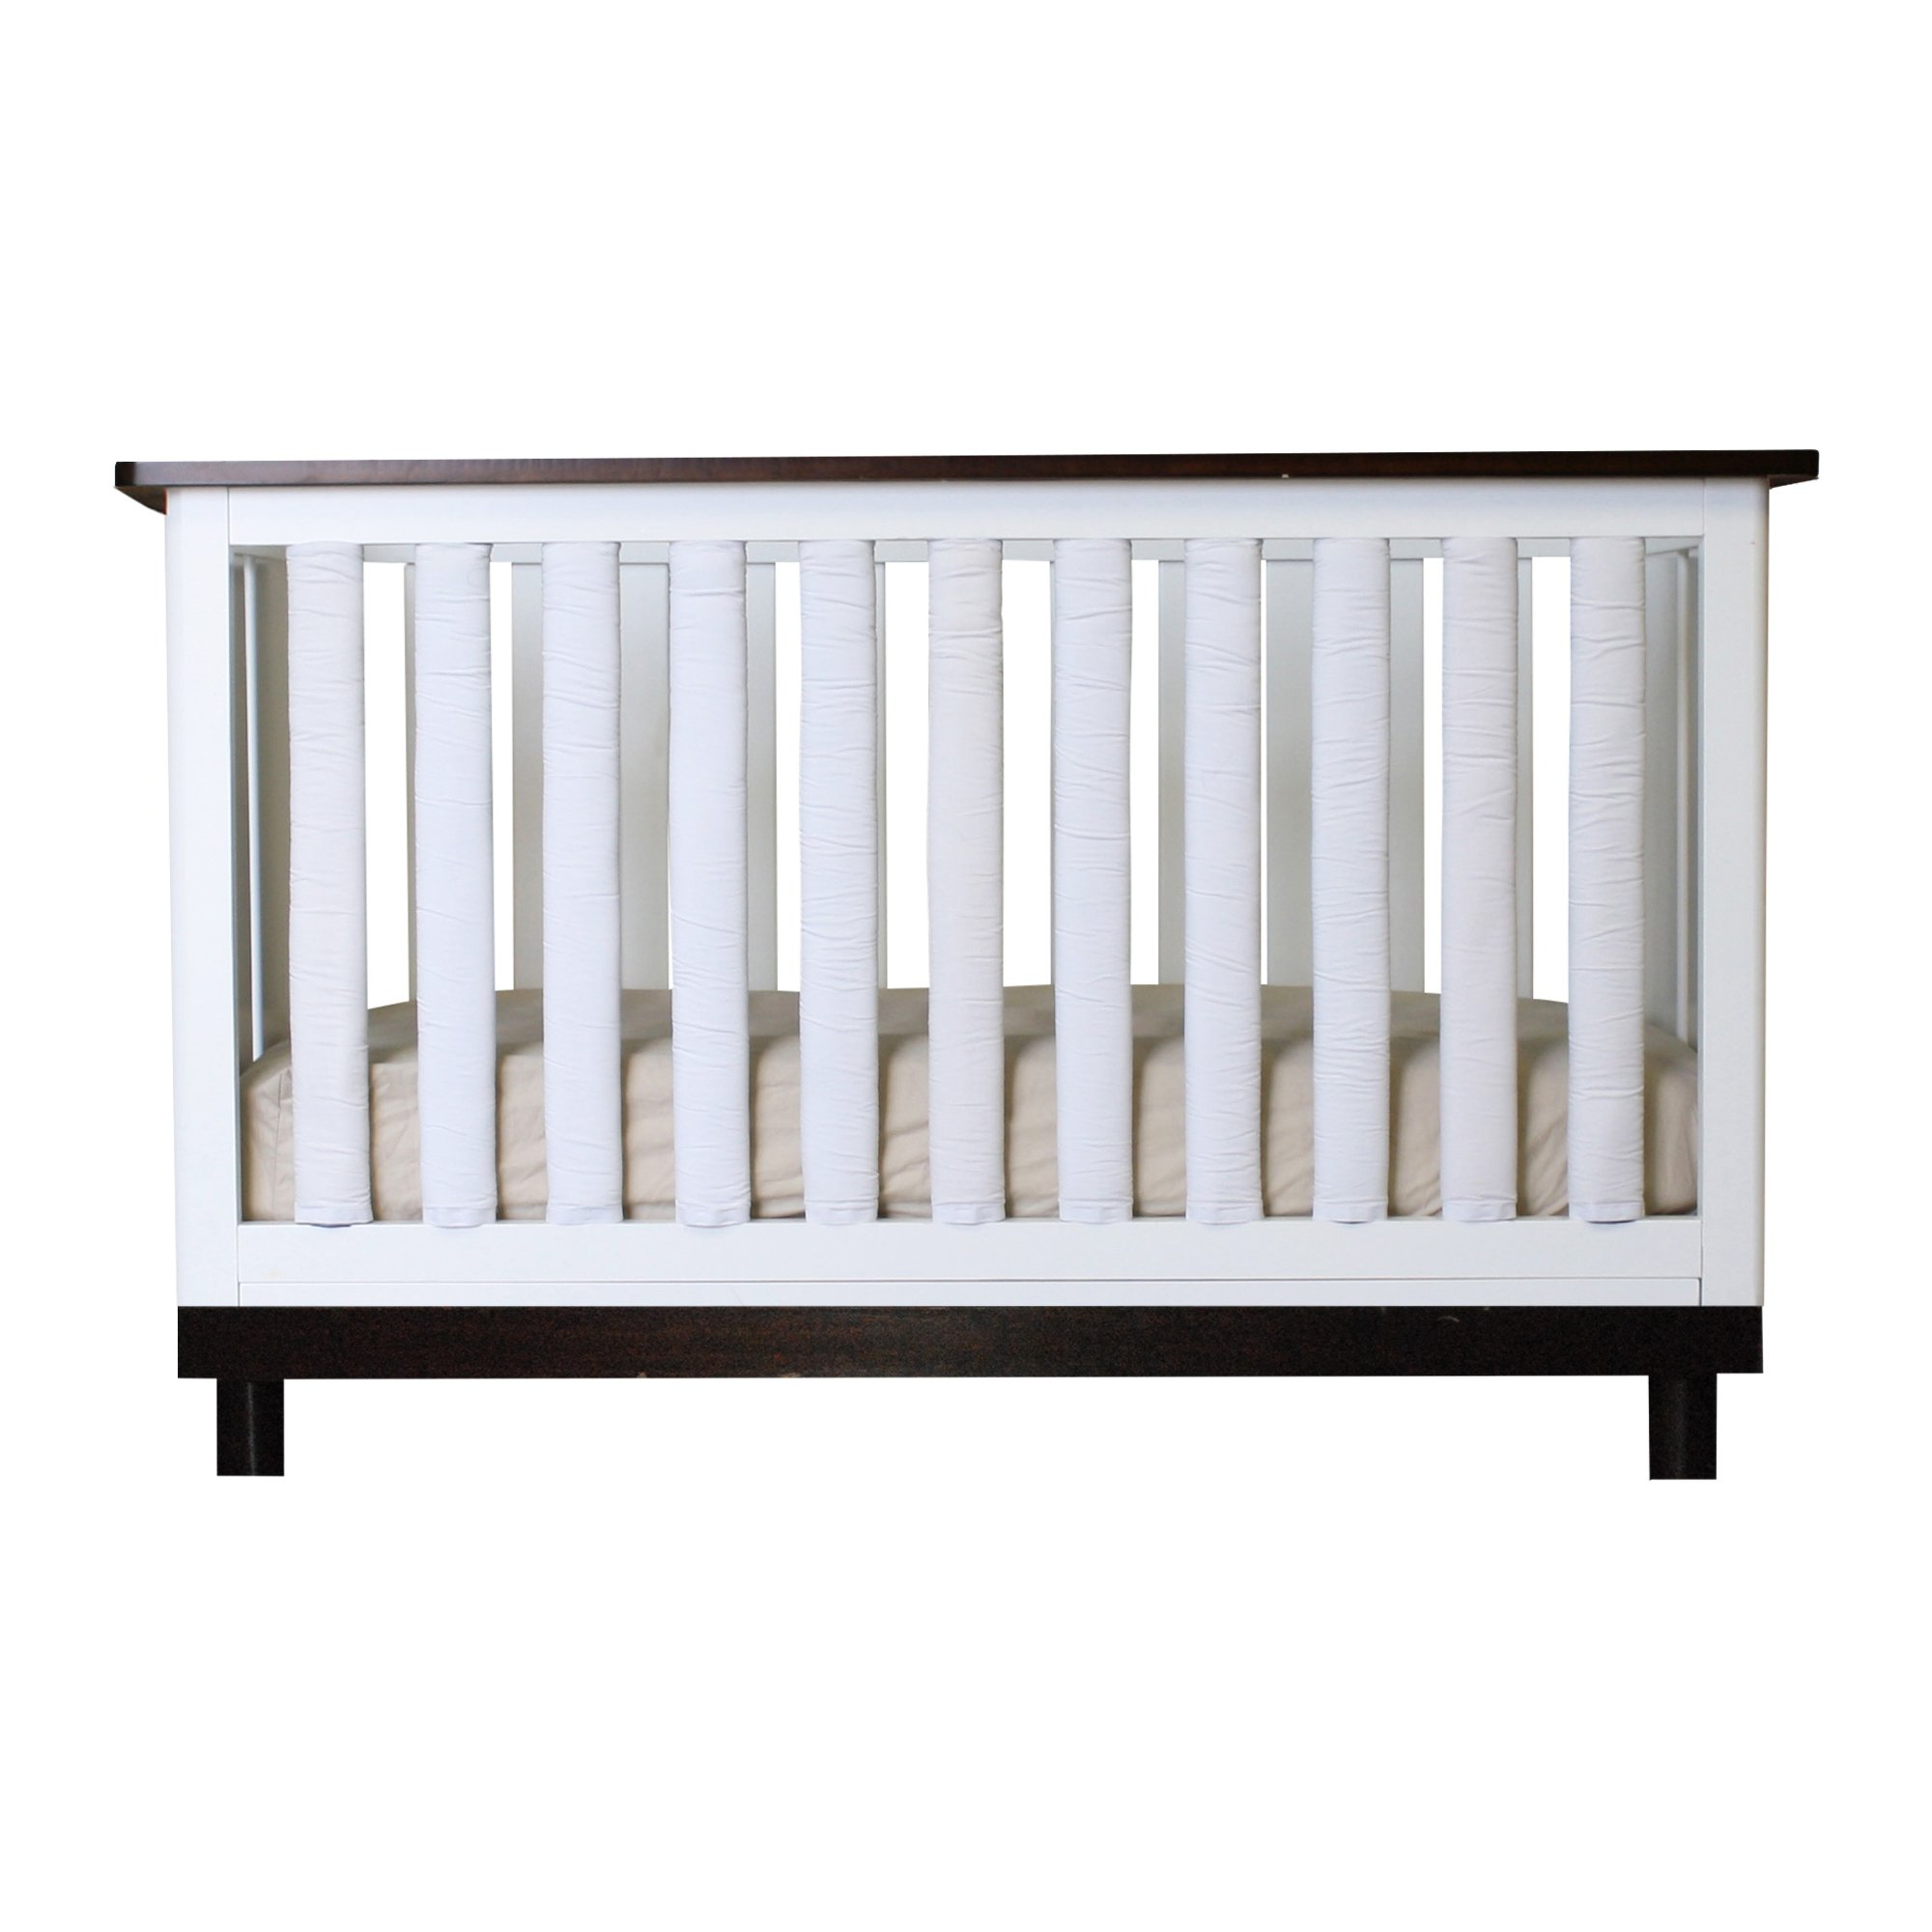 Pure Safety Vertical Crib Liners in True White Cotton 38 Pack by Go Mama Go